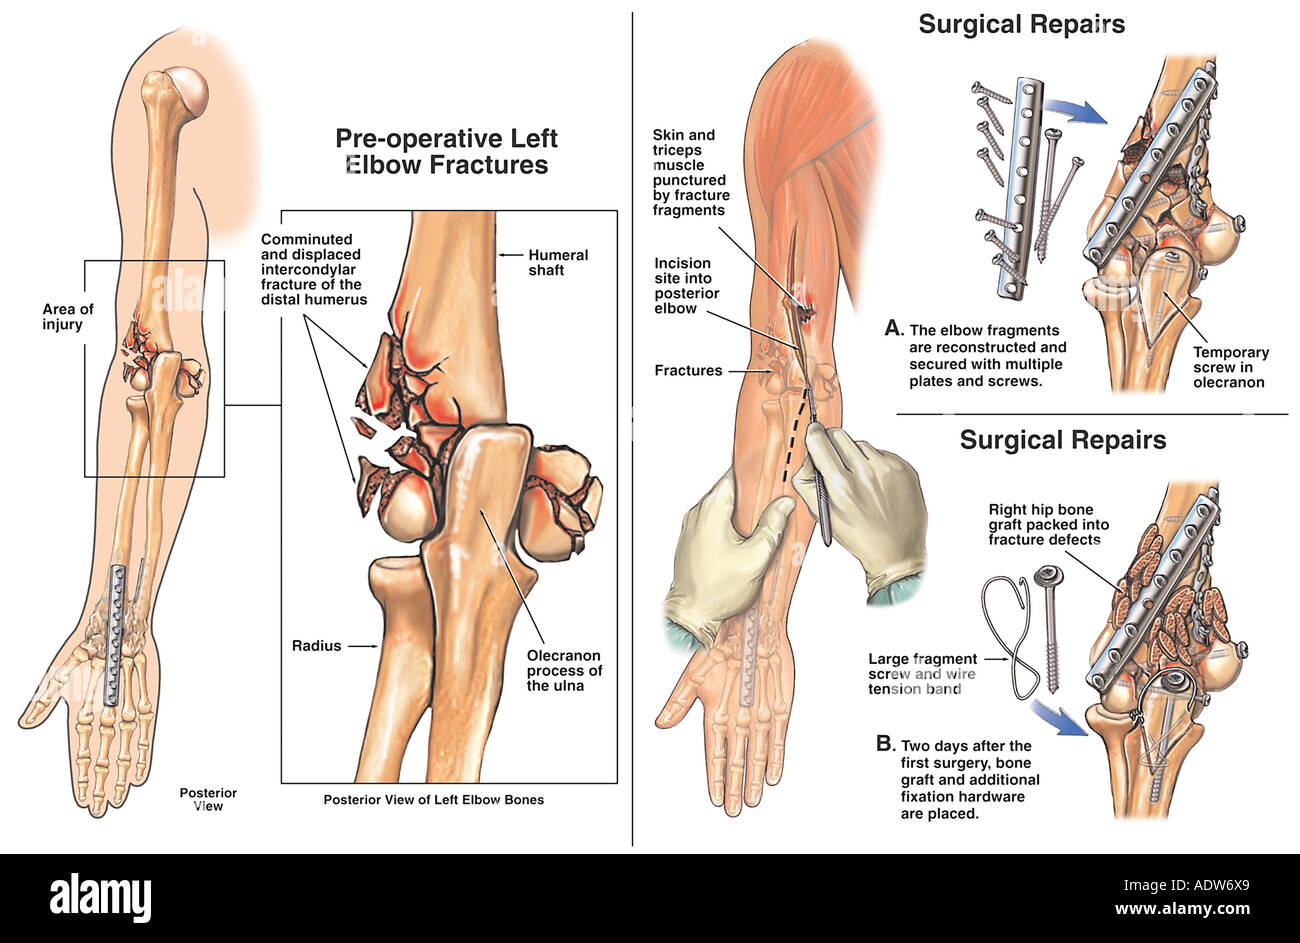 Left Elbow Anatomy Images - human body anatomy